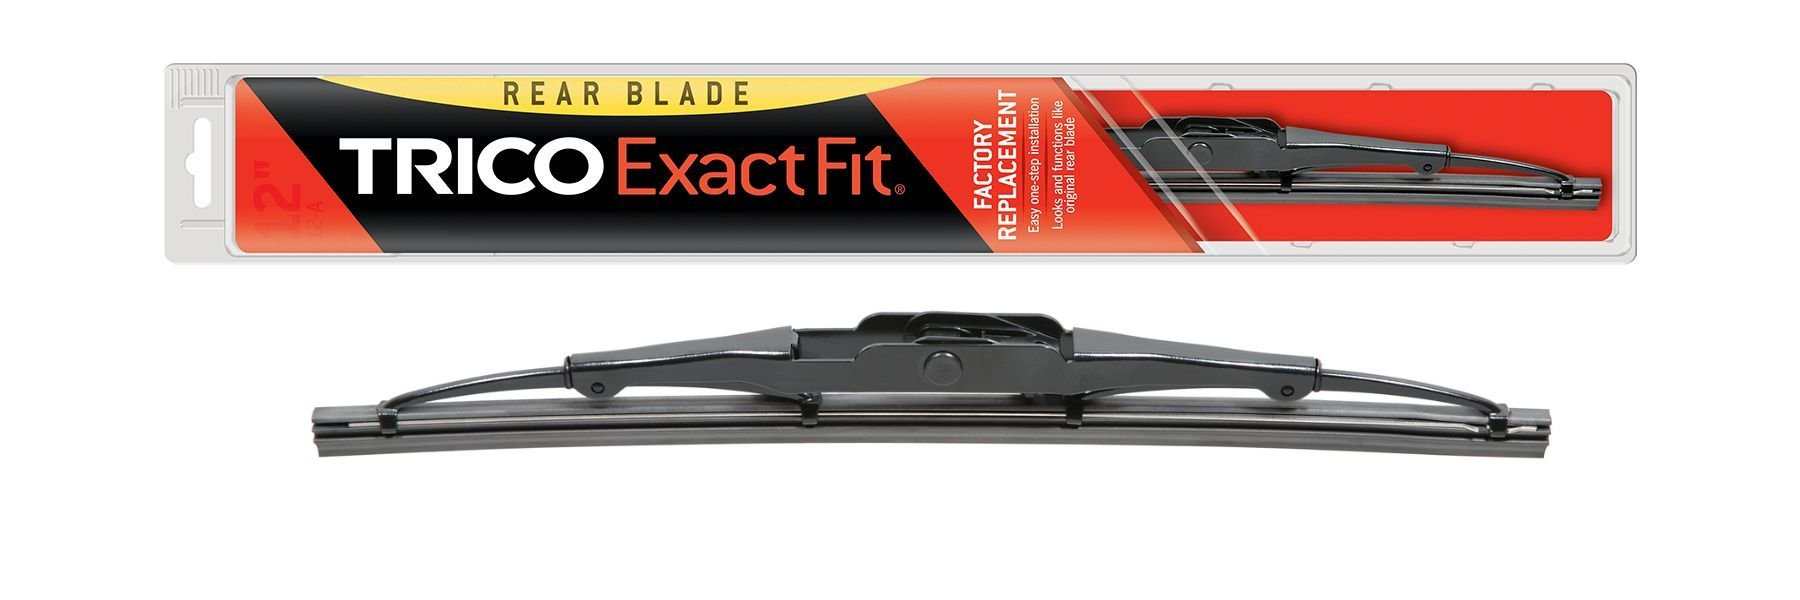 TRICO 32-260 Sentry Dual-Shield Hybrid Technology Wiper Blade Pack of 1 26